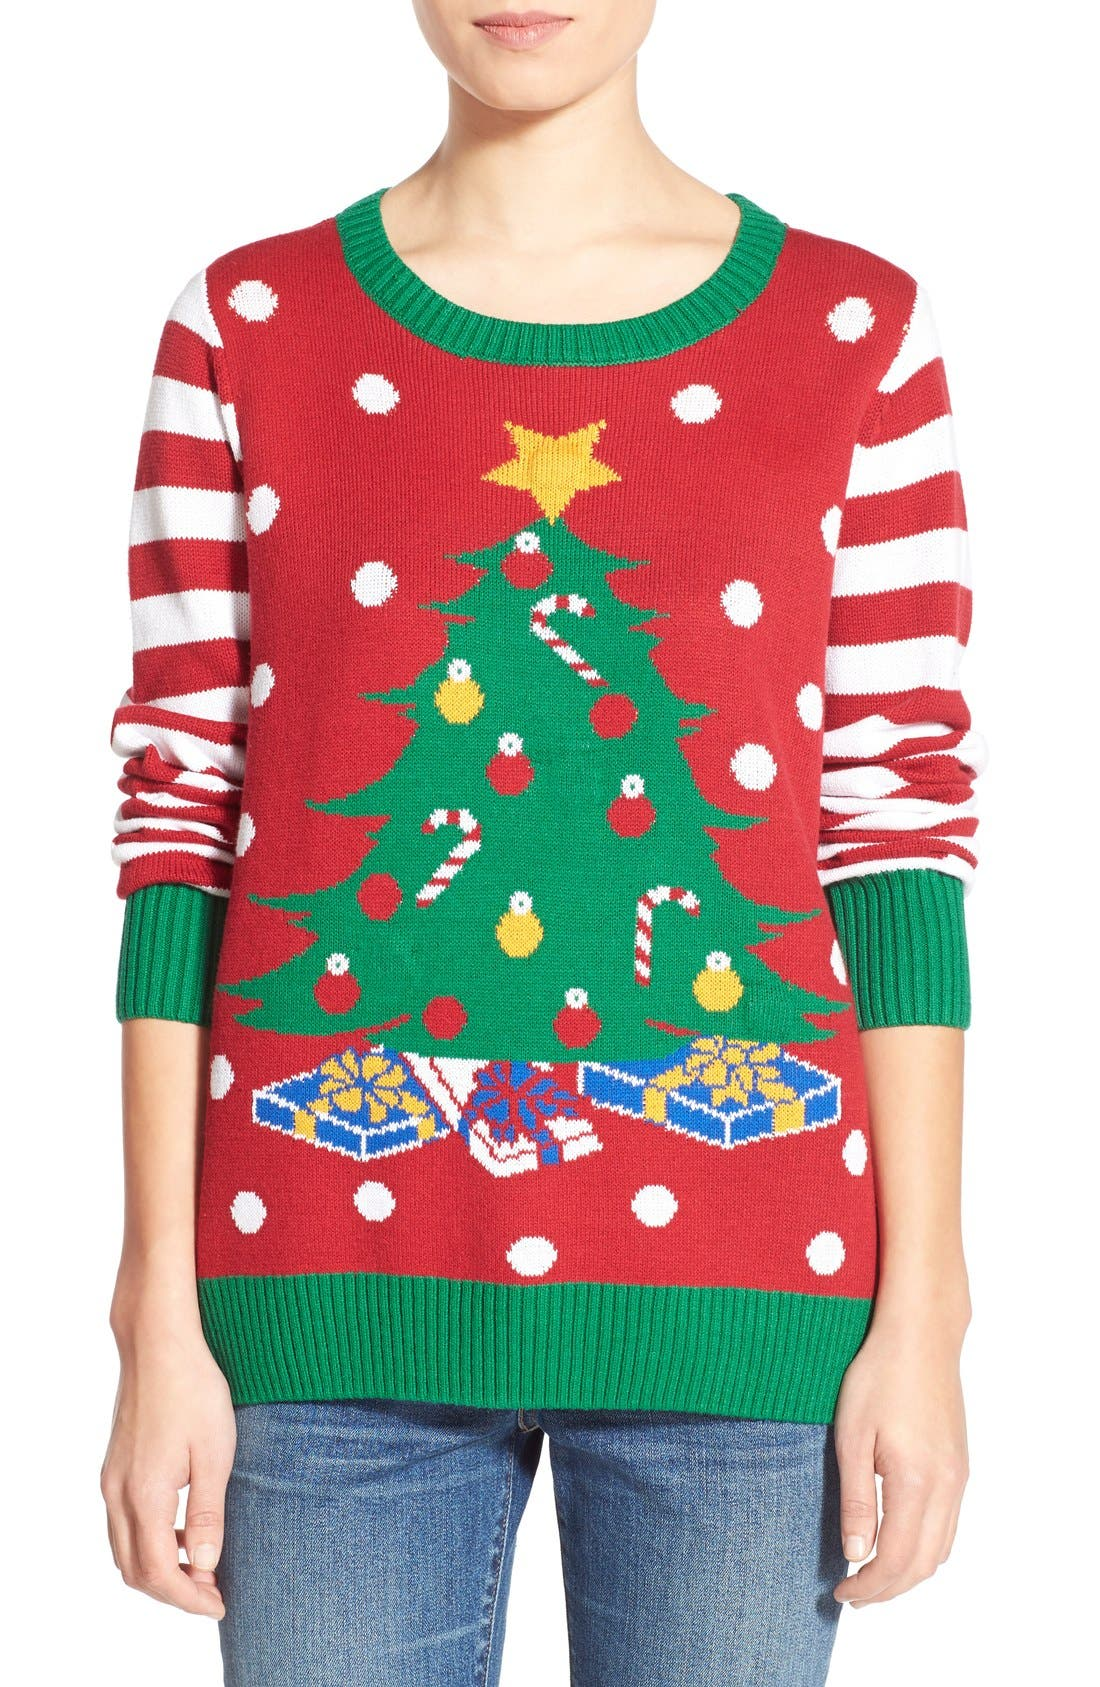 Alternate Image 1 Selected - Ugly Christmas Sweater Light-Up Christmas Tree Sweater